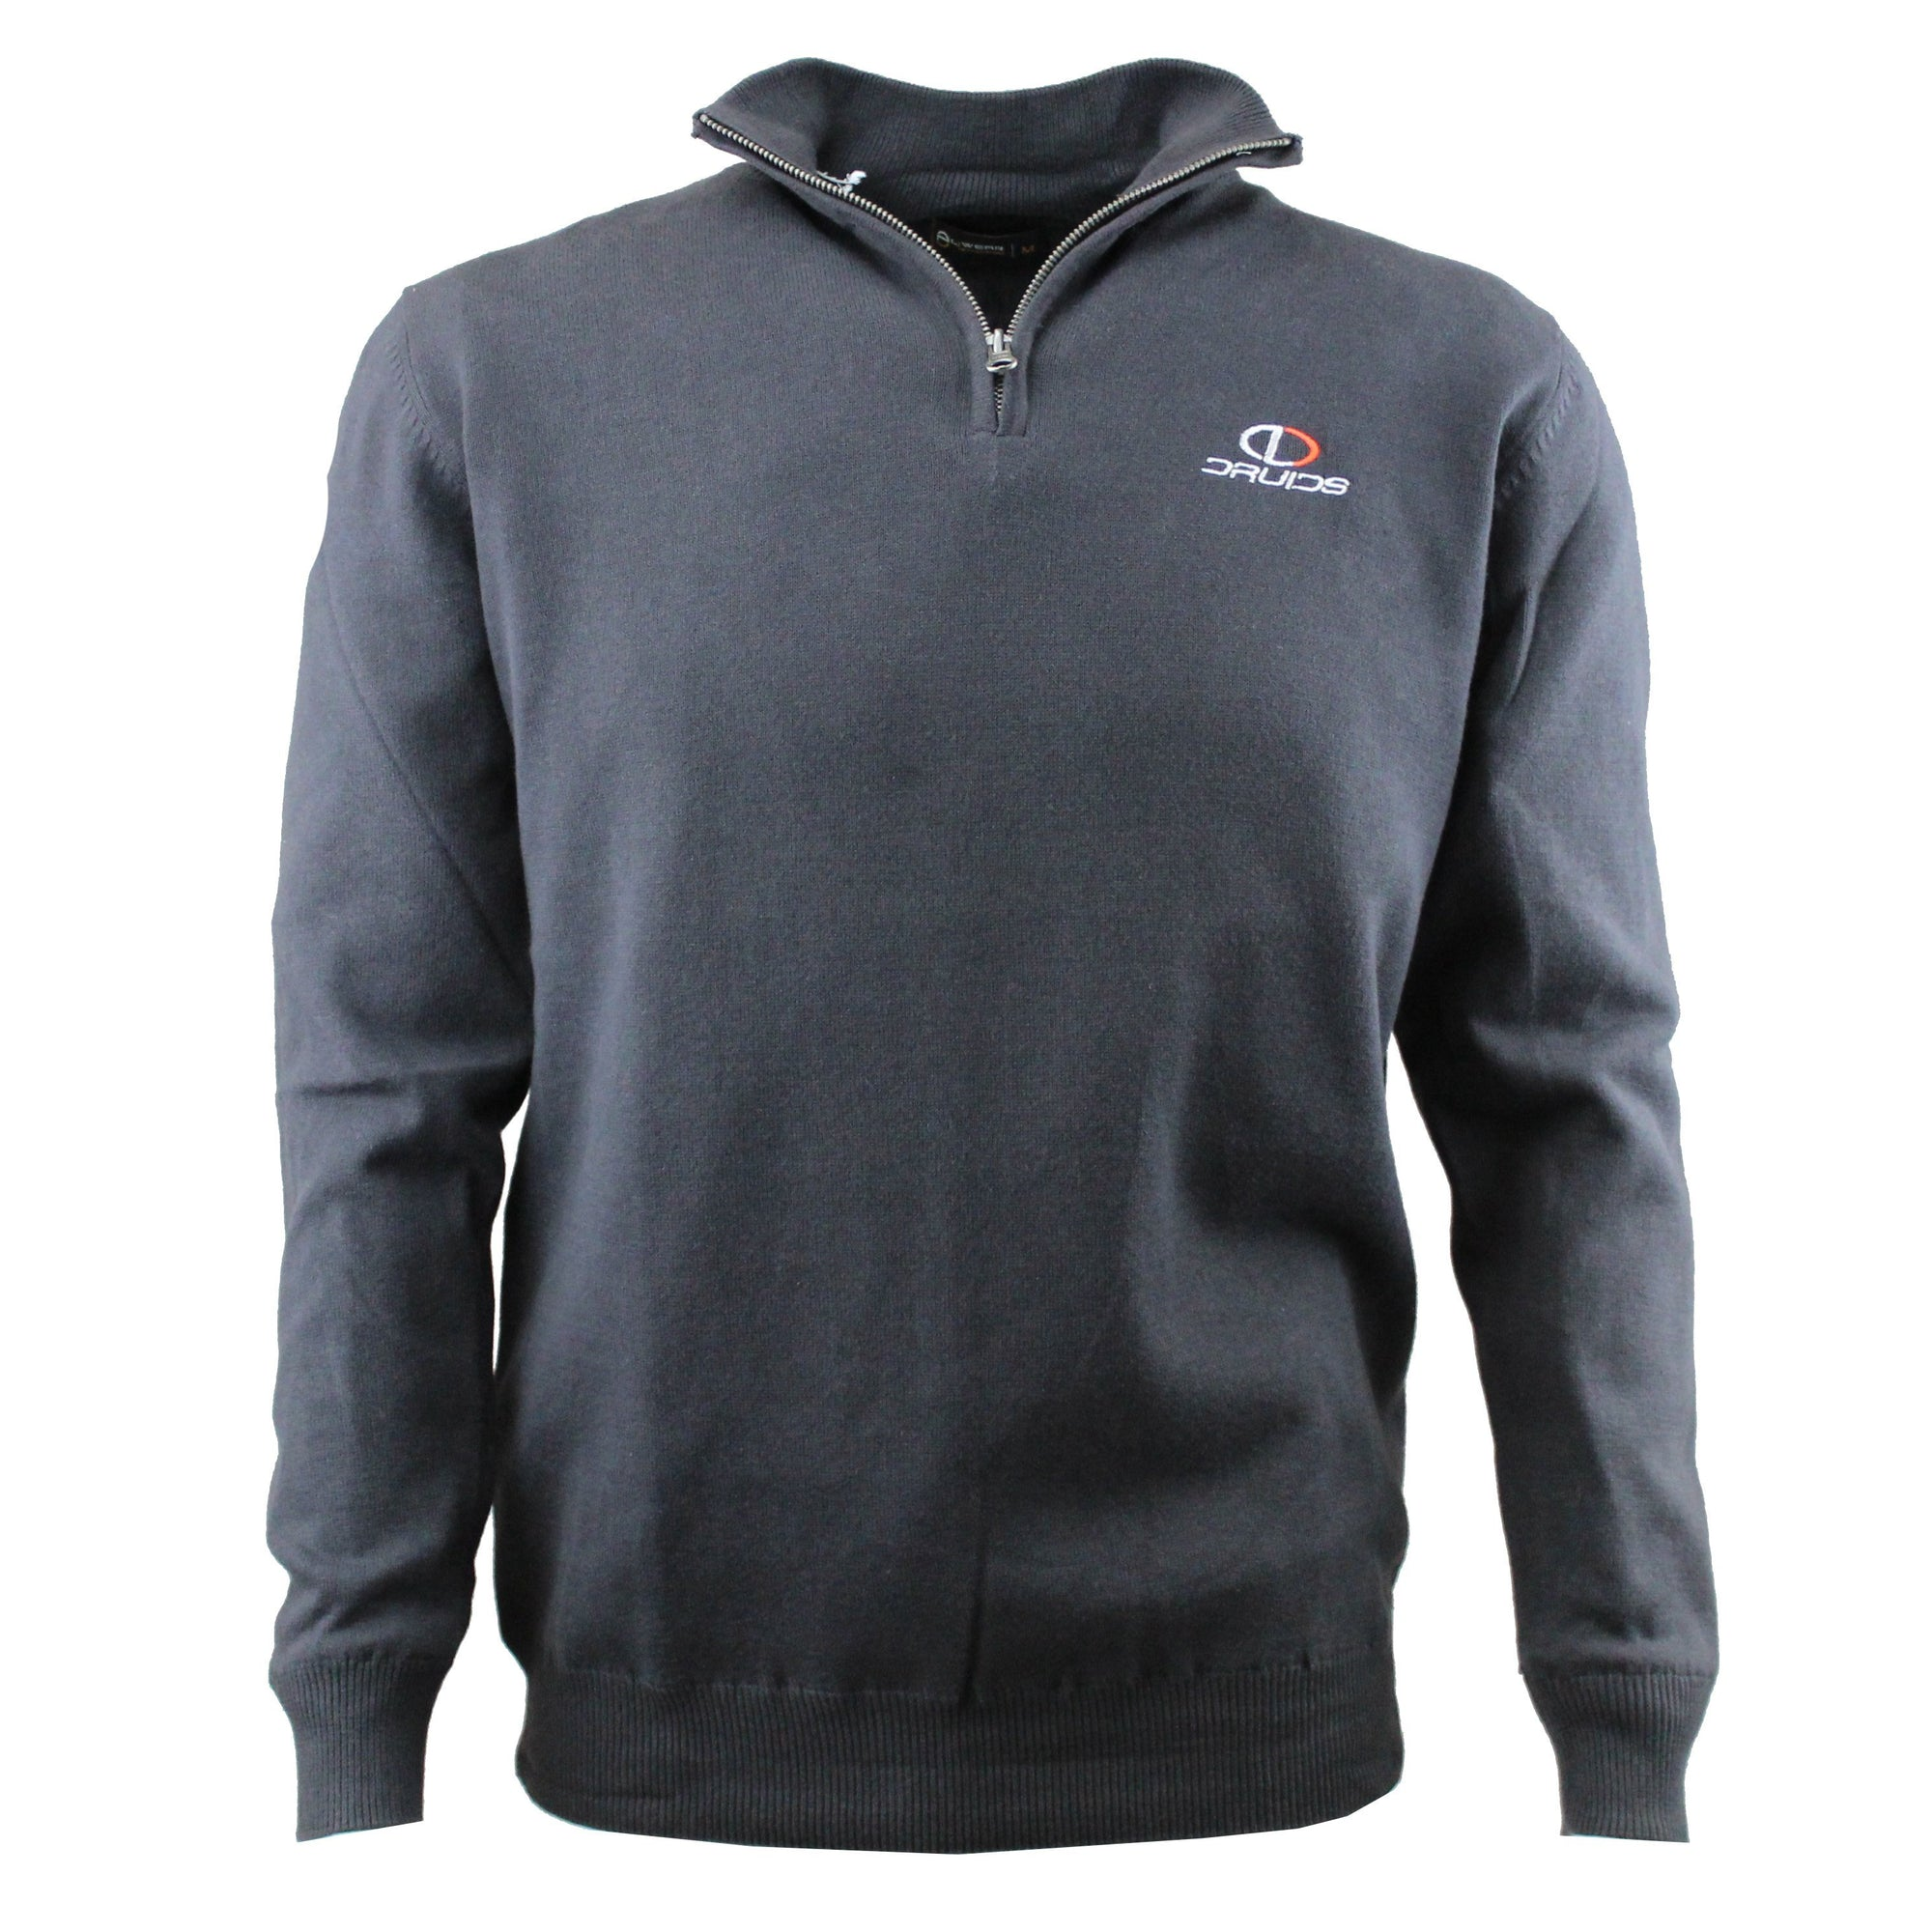 Druids Golf - Cotton Lined Sweater (Charcoal)